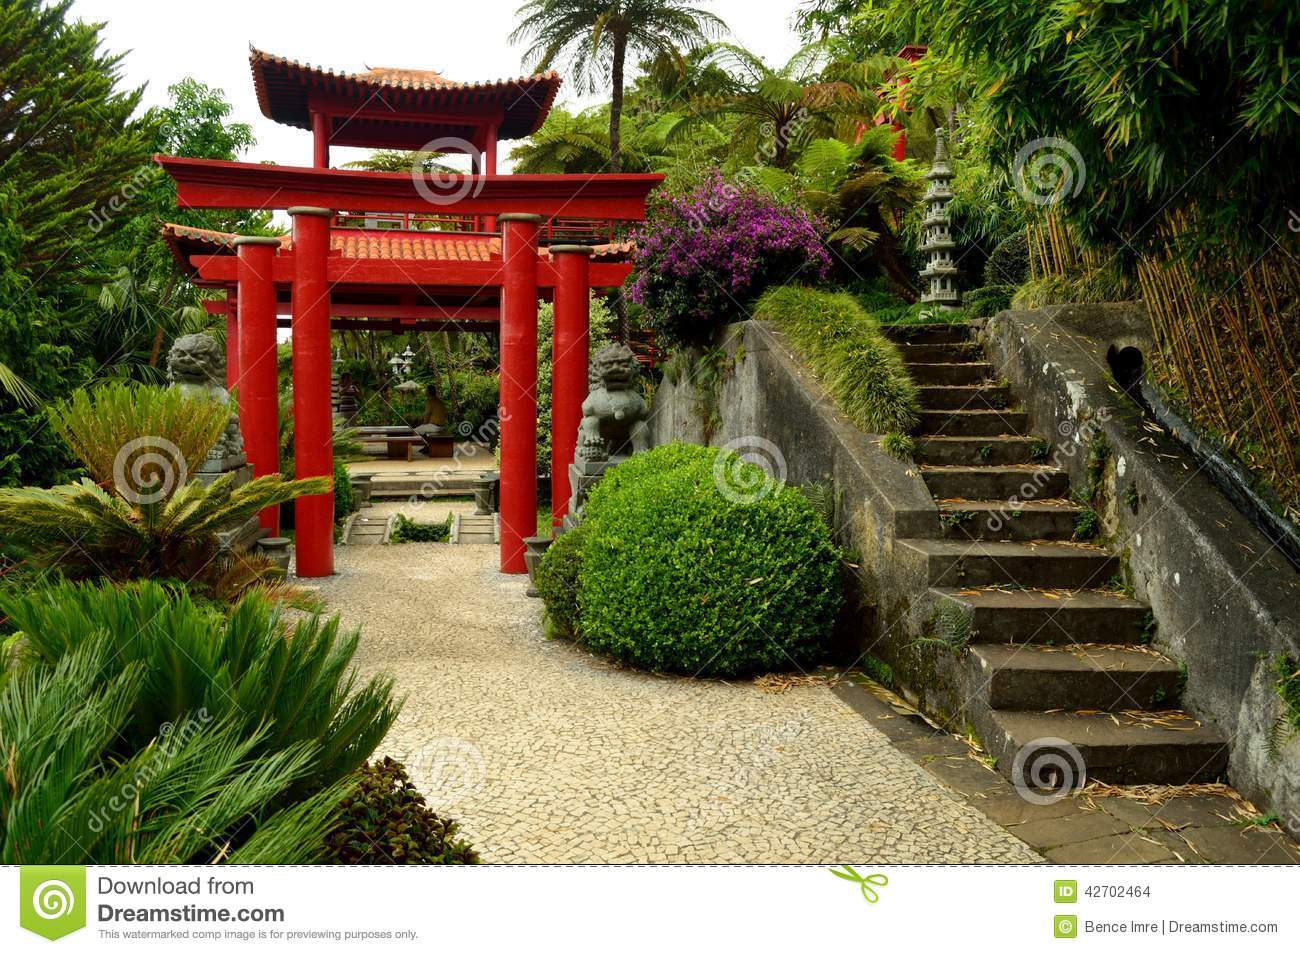 Porte japonaise au jardin tropical de monte palace photo for Porte exterieur de jardin